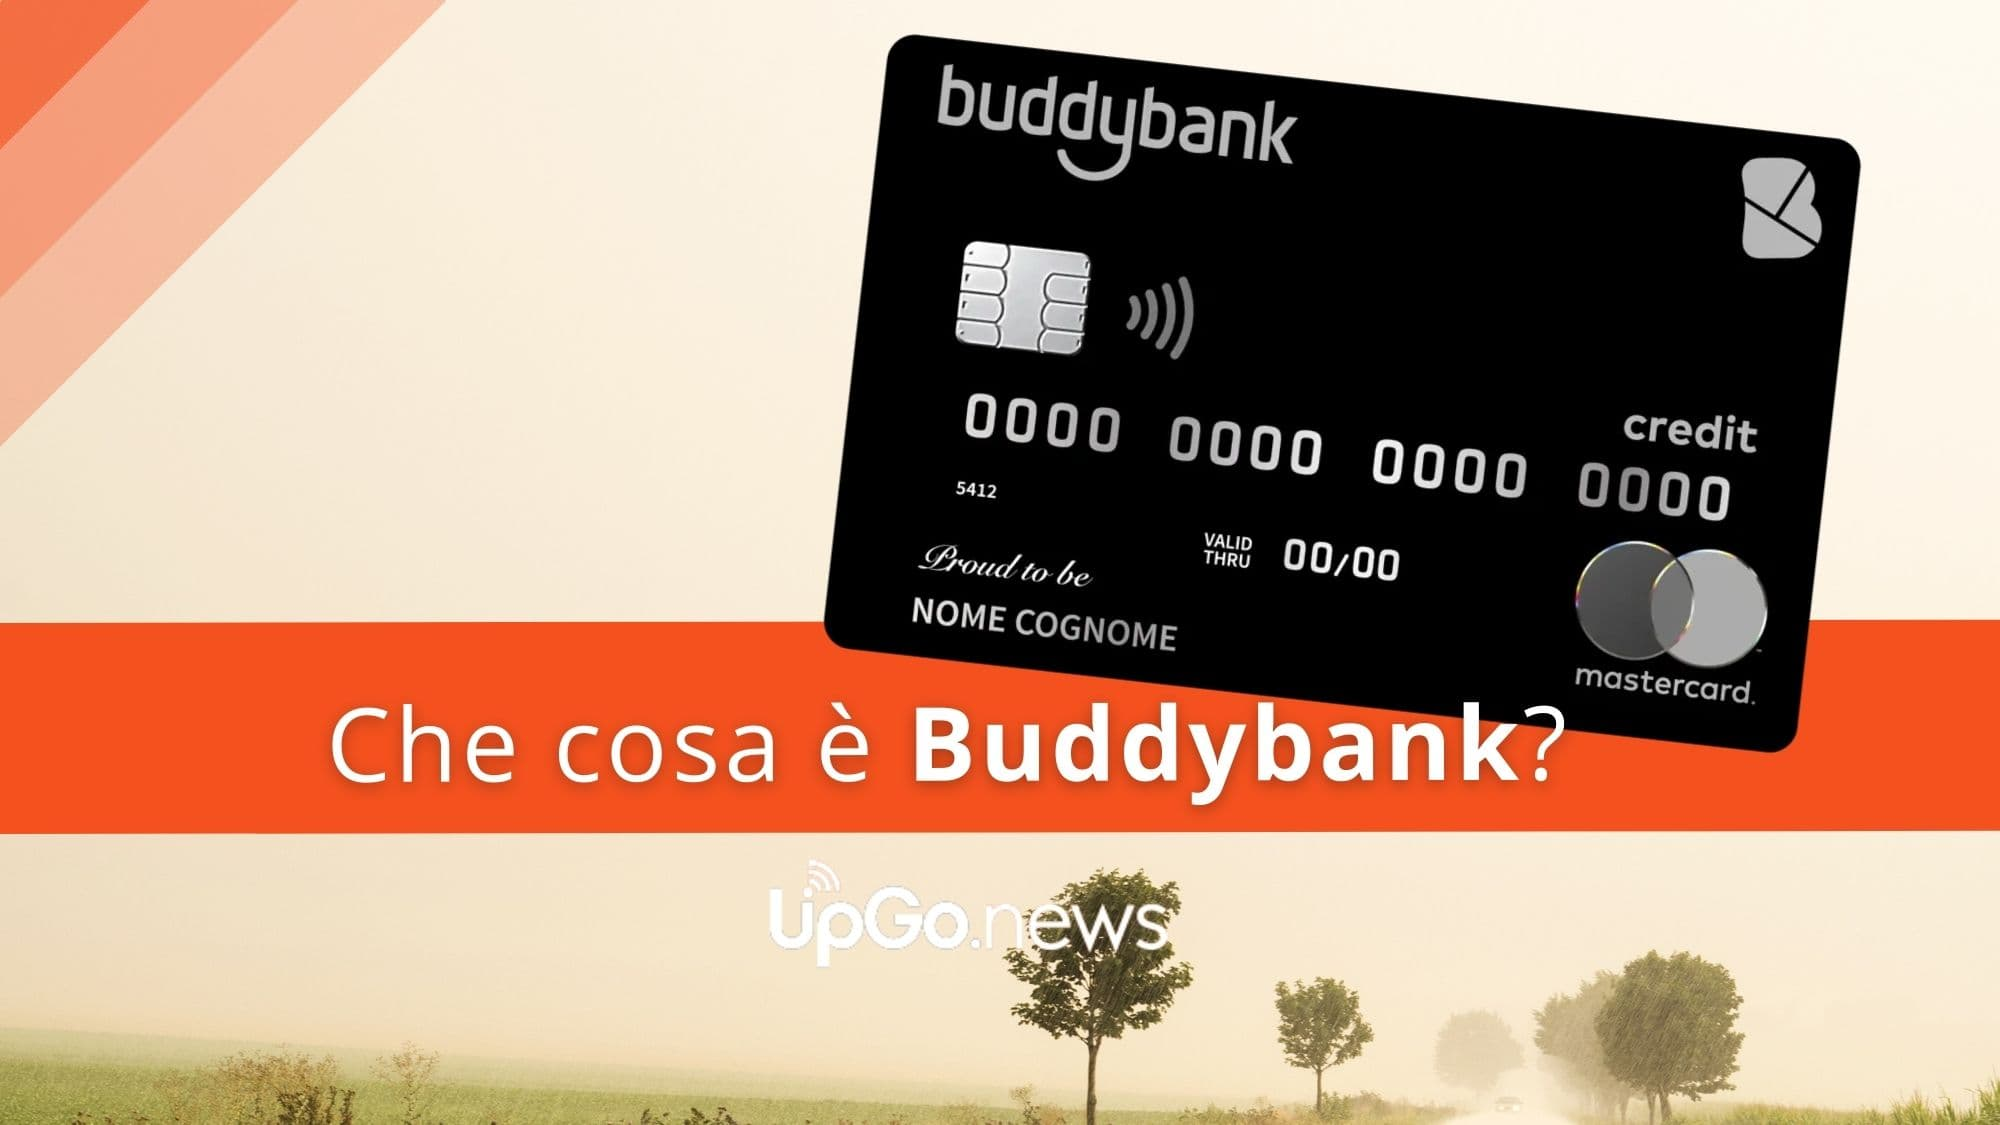 Buddybank è di Unicredit?